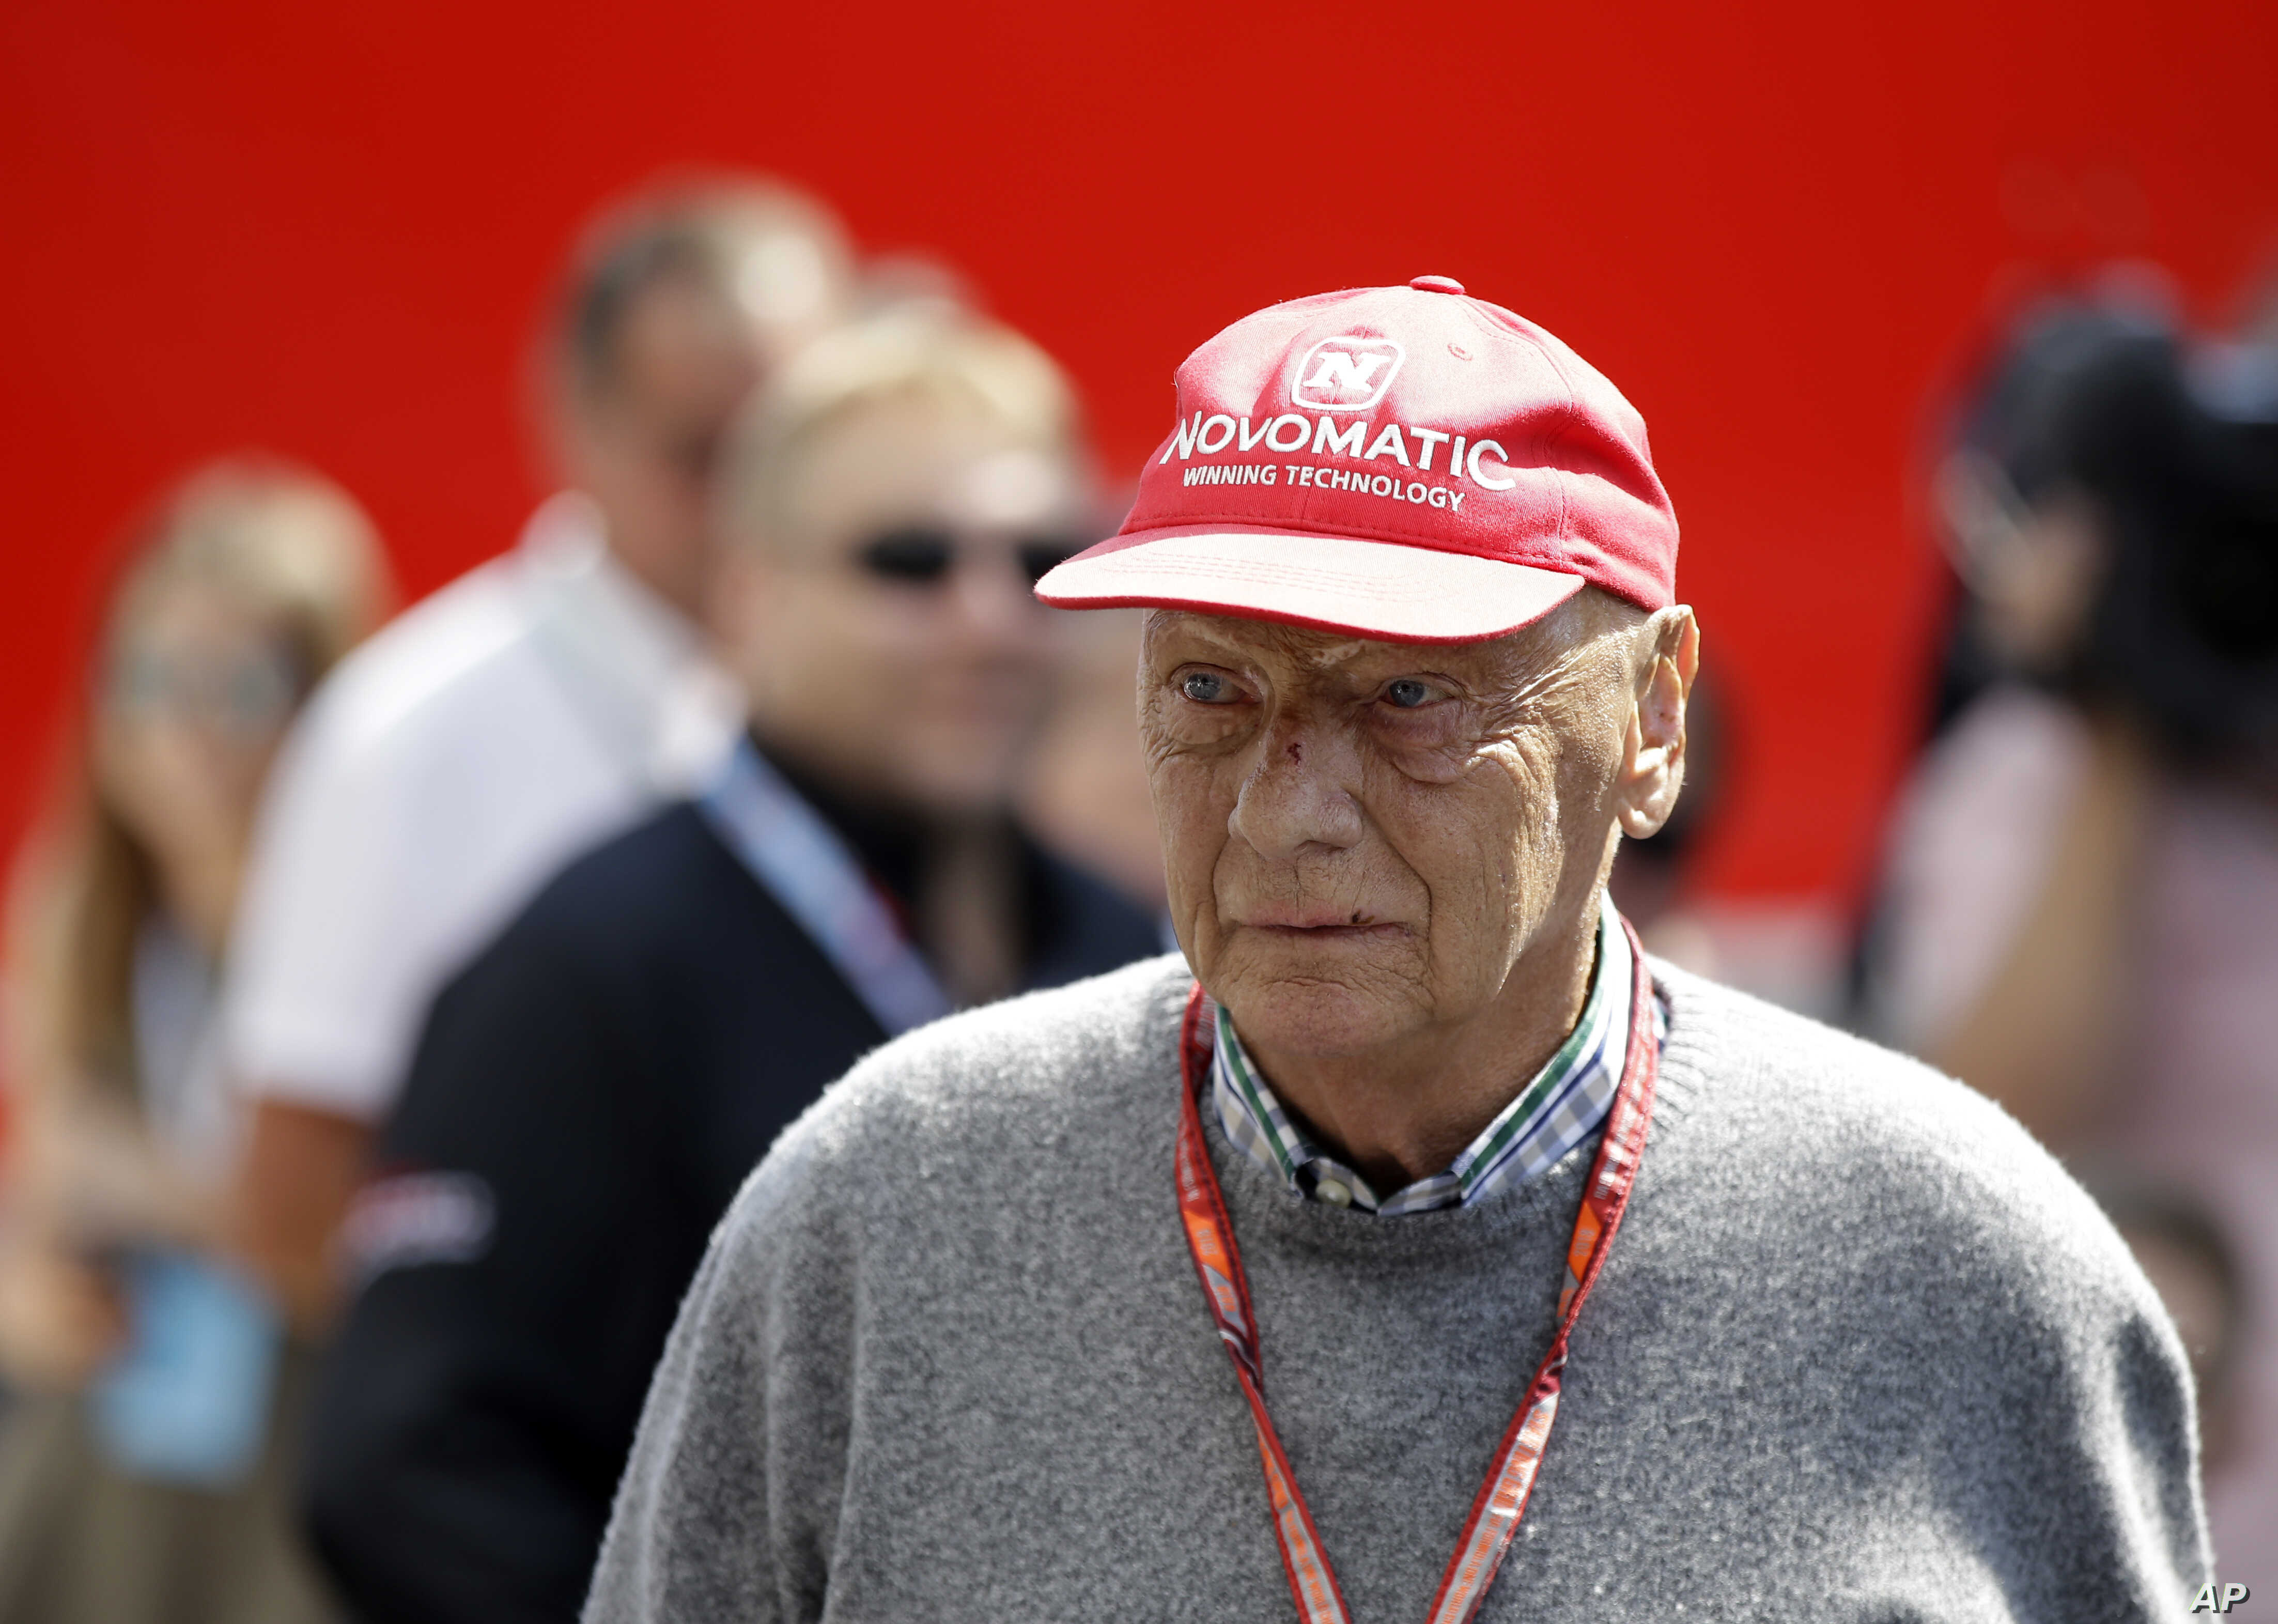 In this July 7, 2018 file photo former Formula One World Champion Niki Lauda of Austria walks in the paddock before the third free practice at the Silverstone racetrack, Silverstone, England.